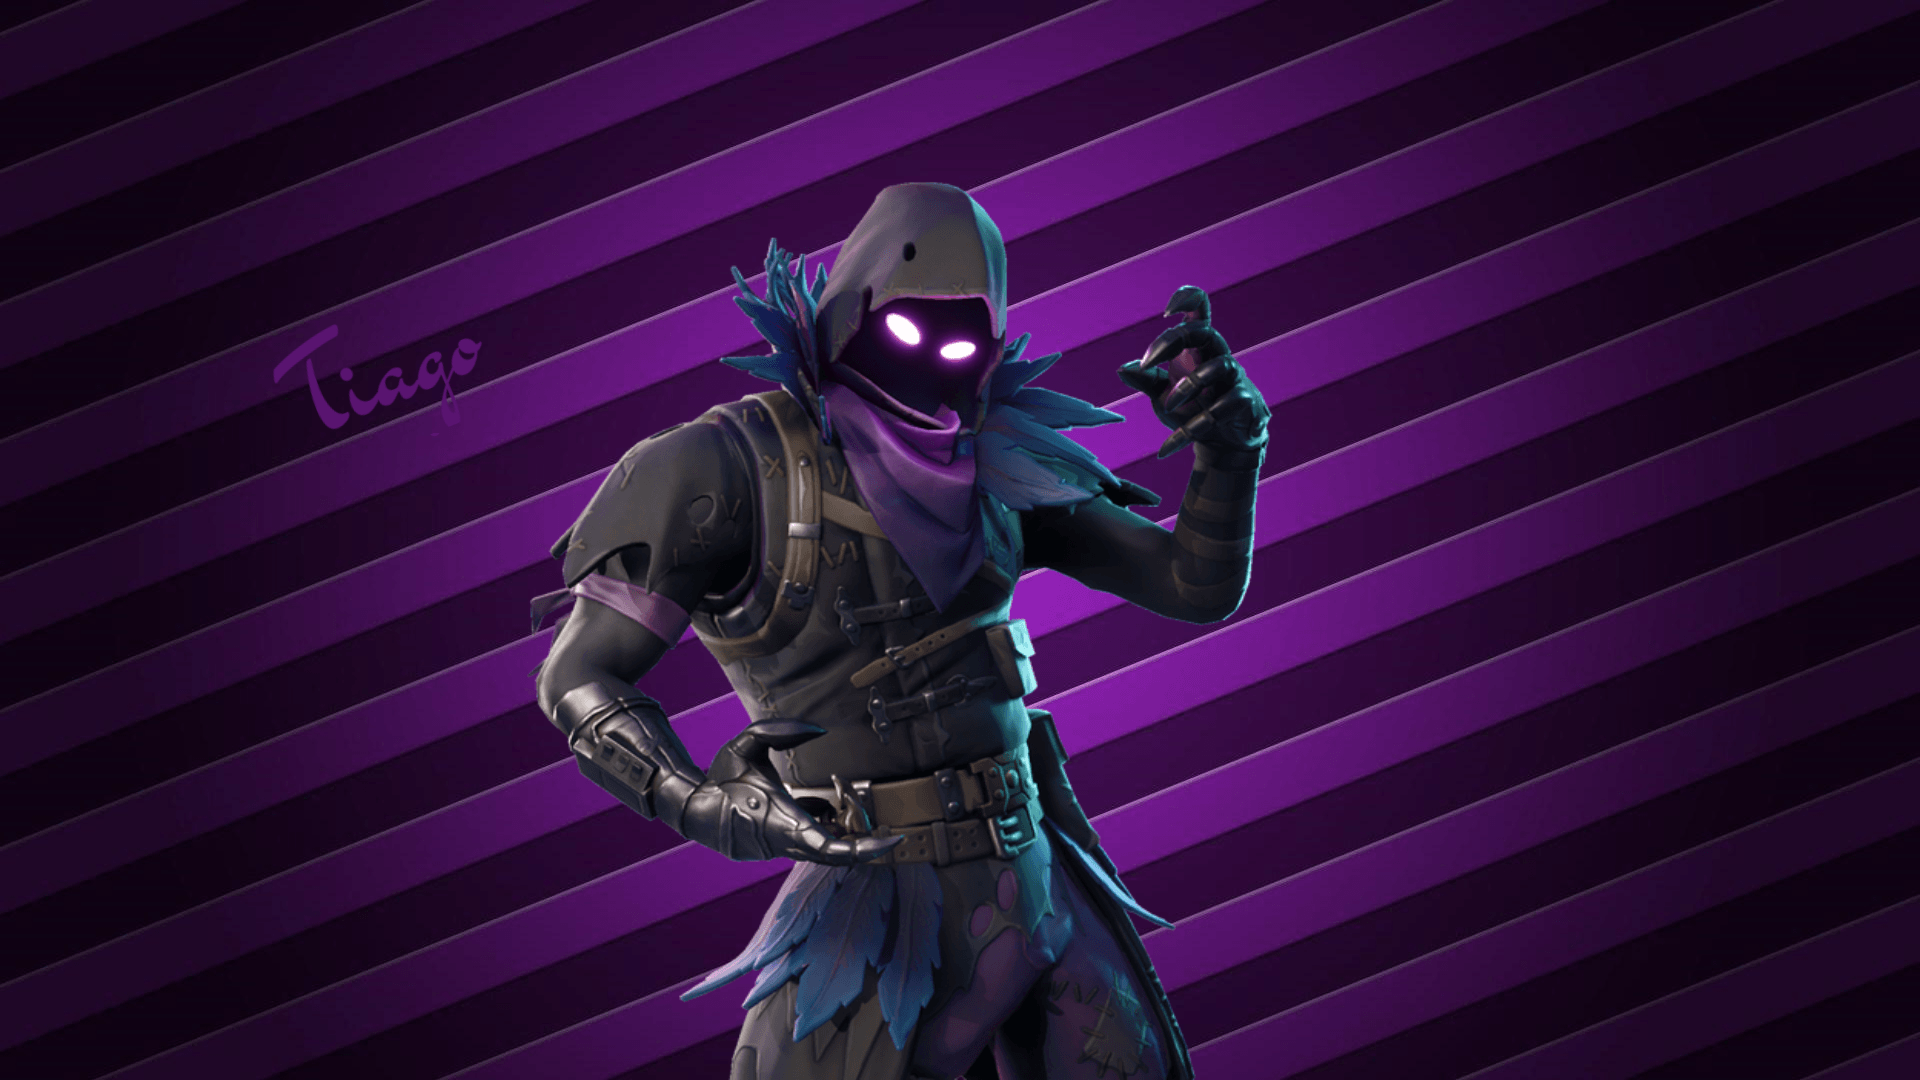 Awesome Fortnite Wallpapers Raven Amazing Wallpaper Hd Library